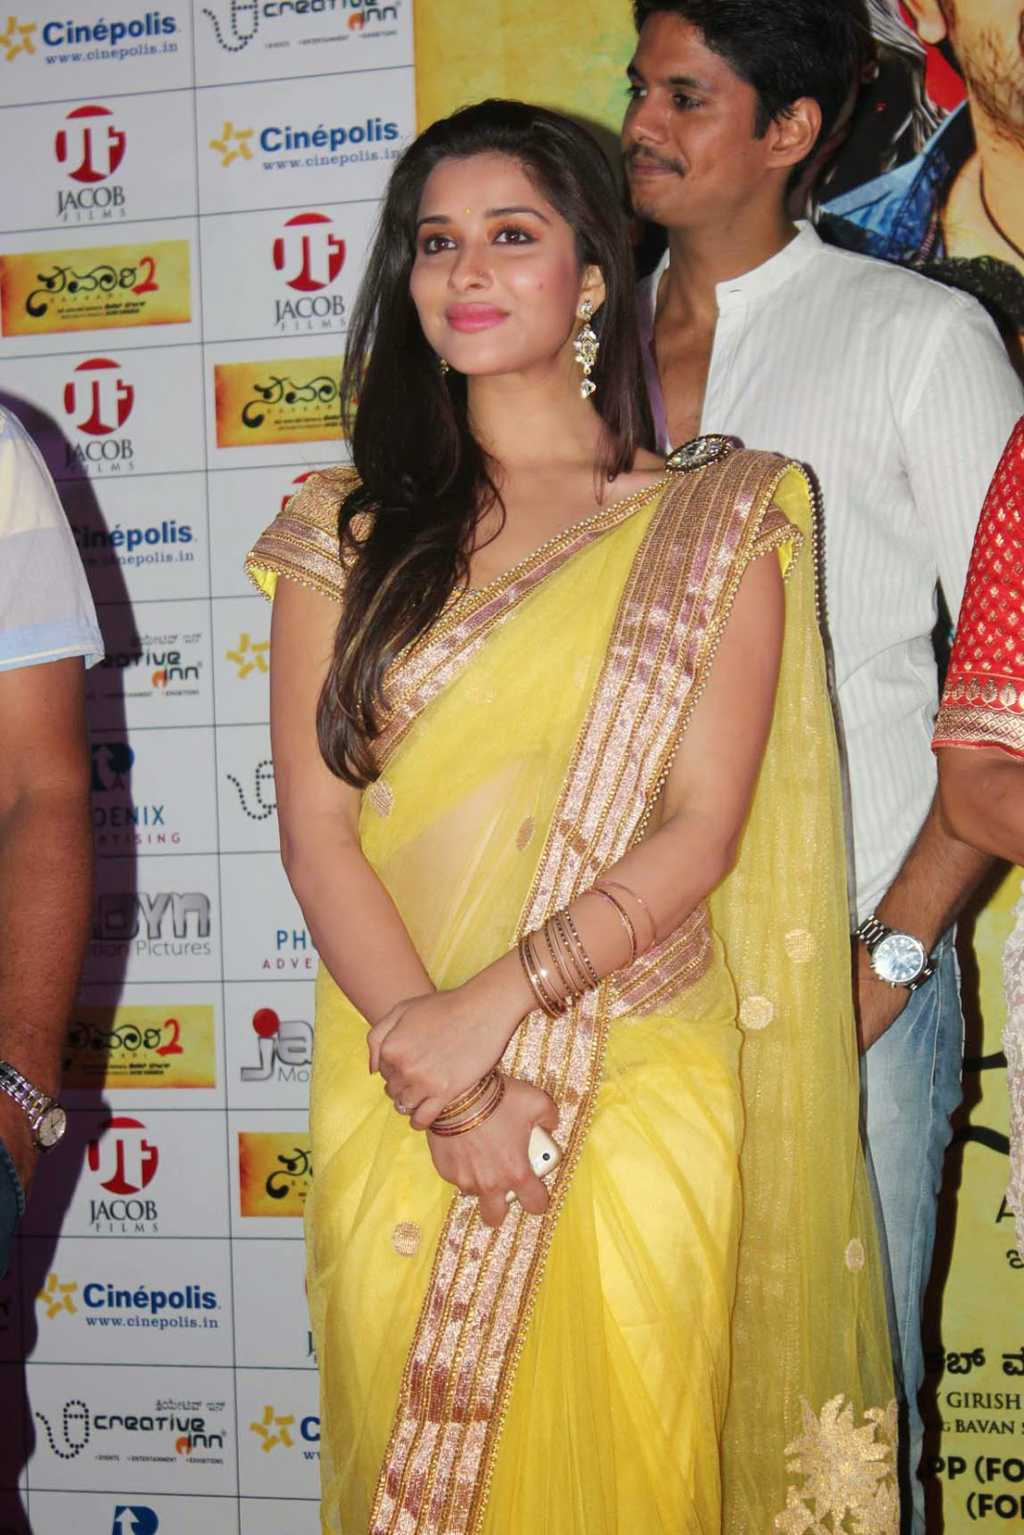 Kollywood Actress Hip Navel Show In Yellow Saree Madhurima